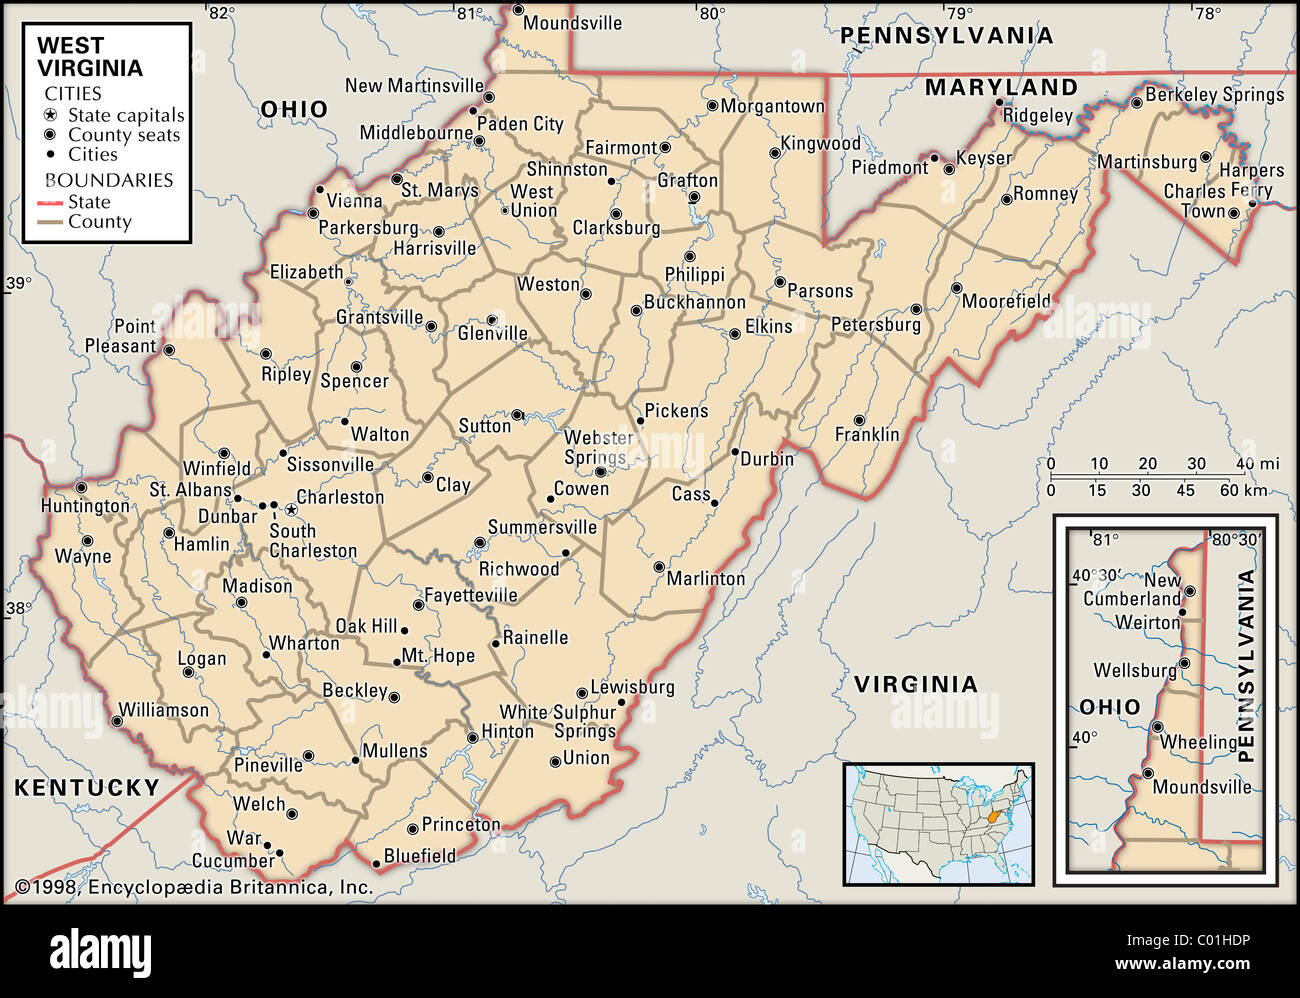 Mapa político de West Virginia Imagen De Stock